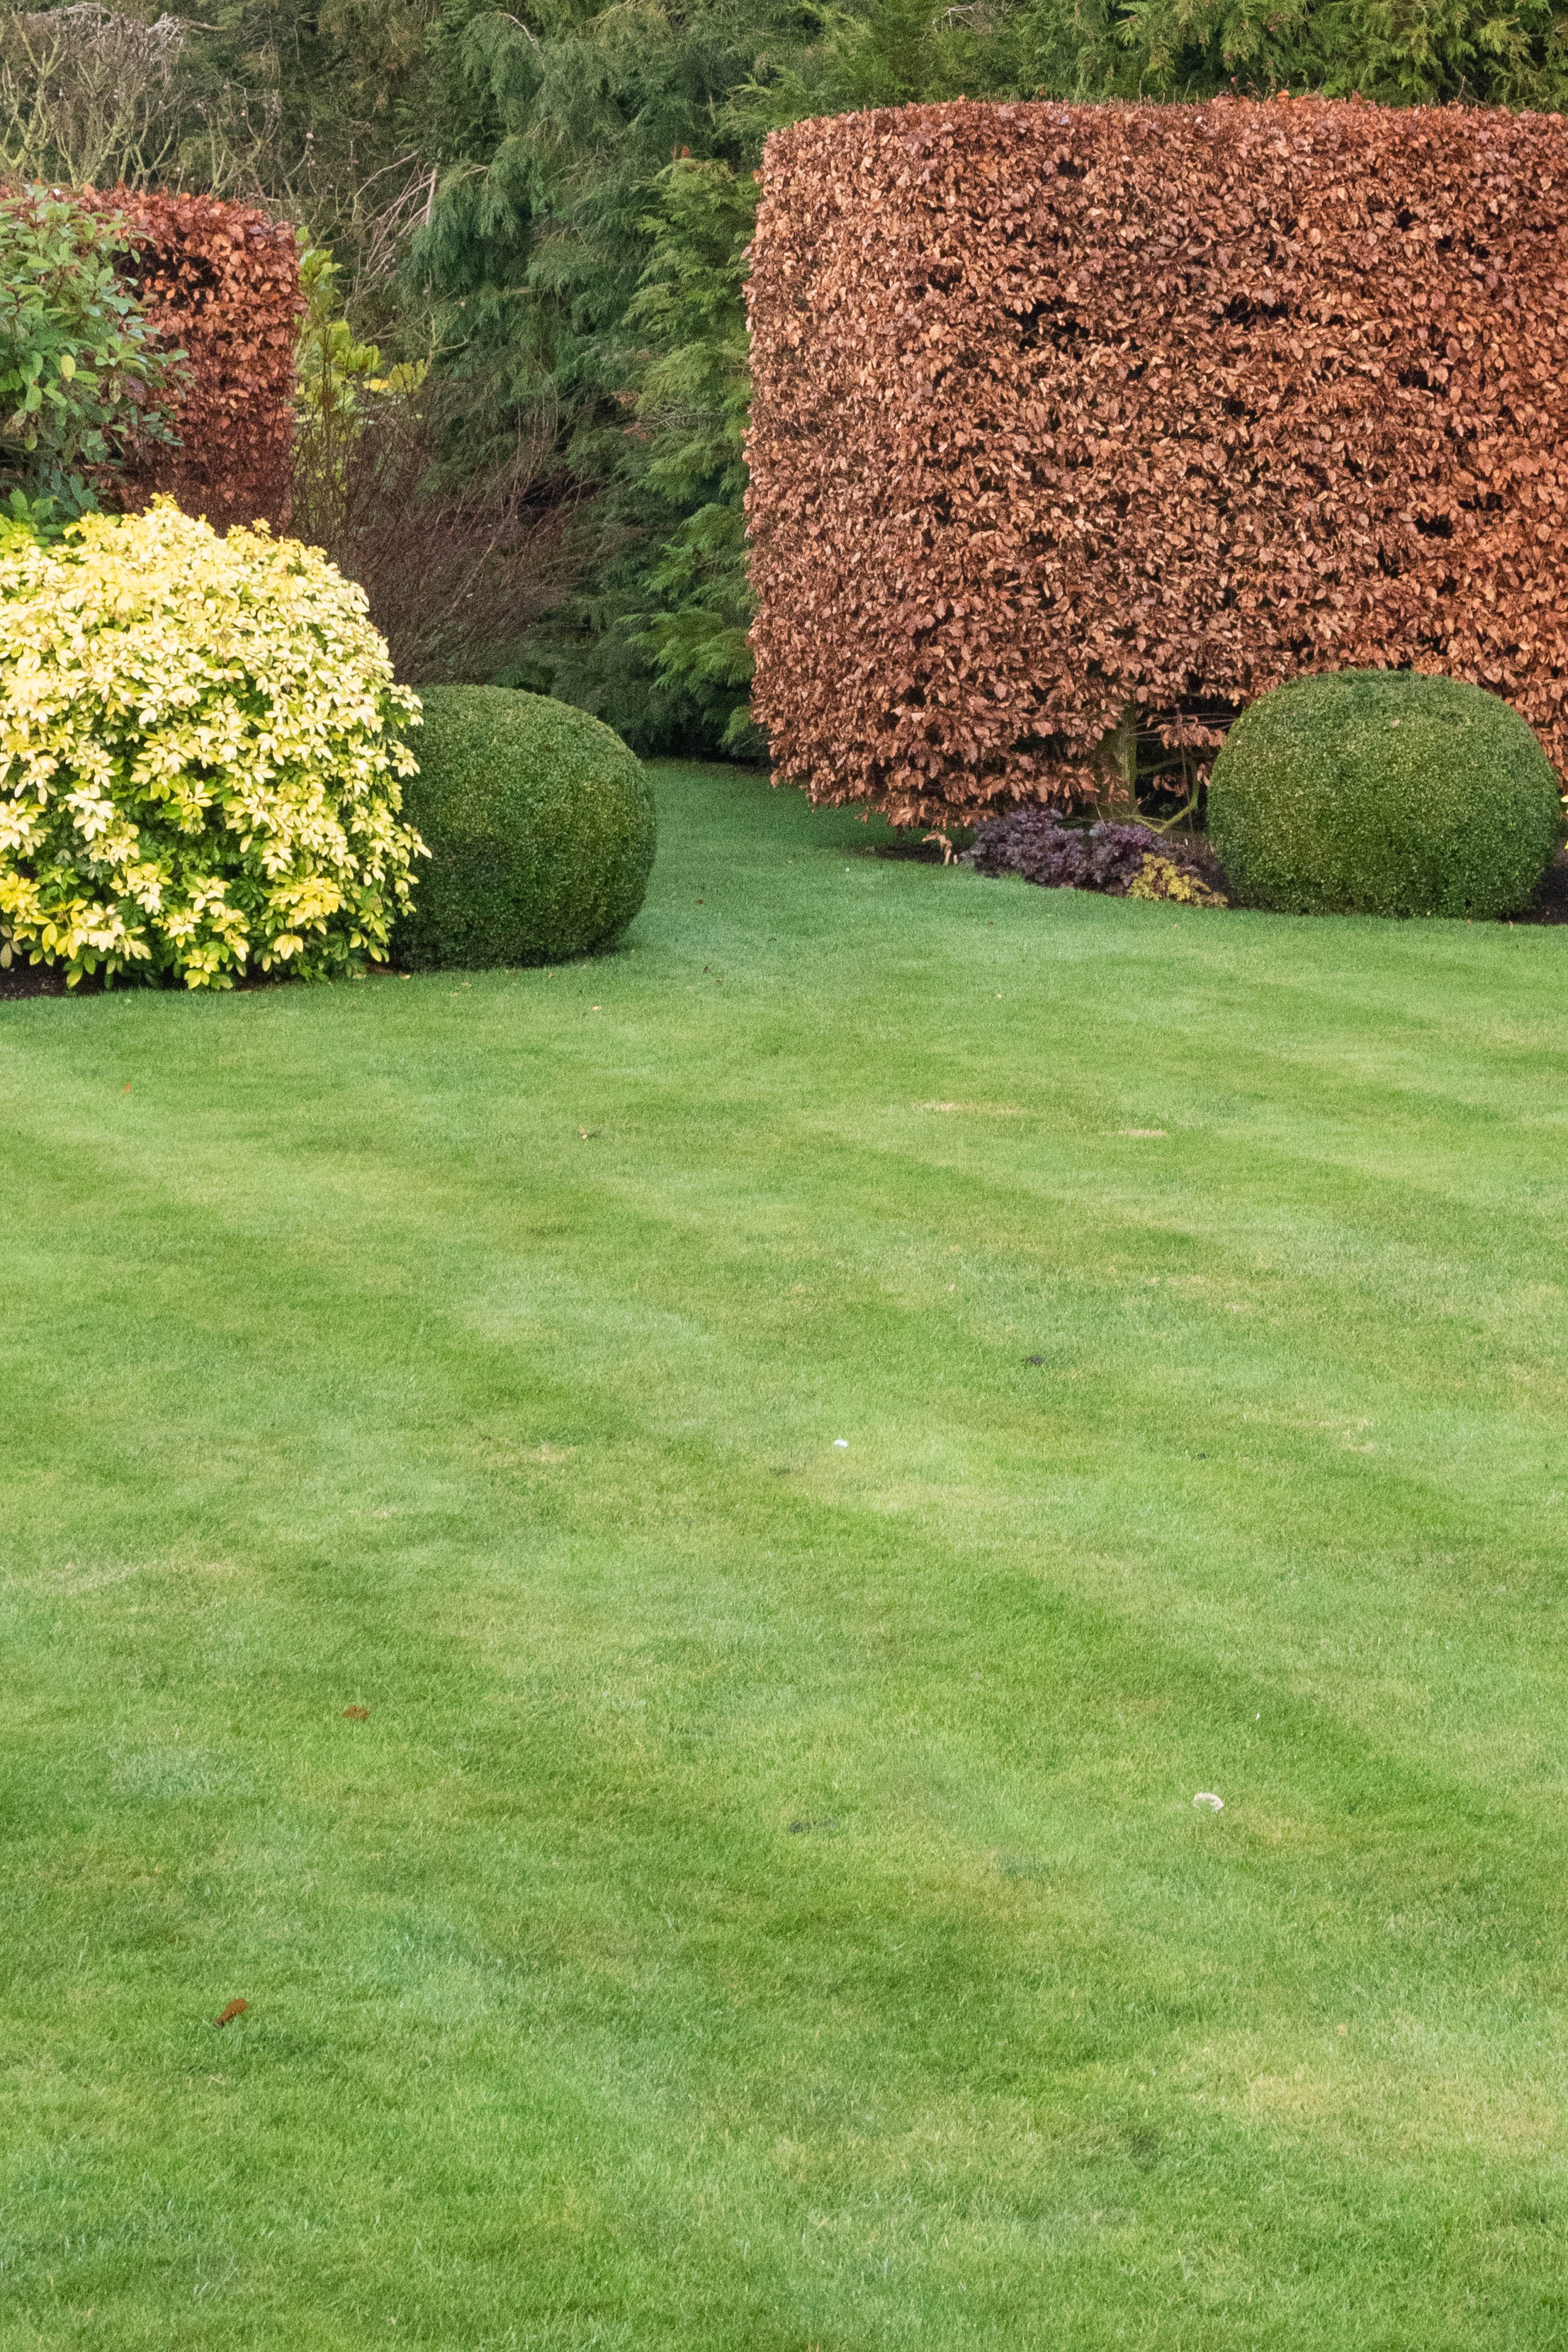 How To Use Easy Topiary Shapes In Stylish Ways The Middle Sized Garden Gardening Blog